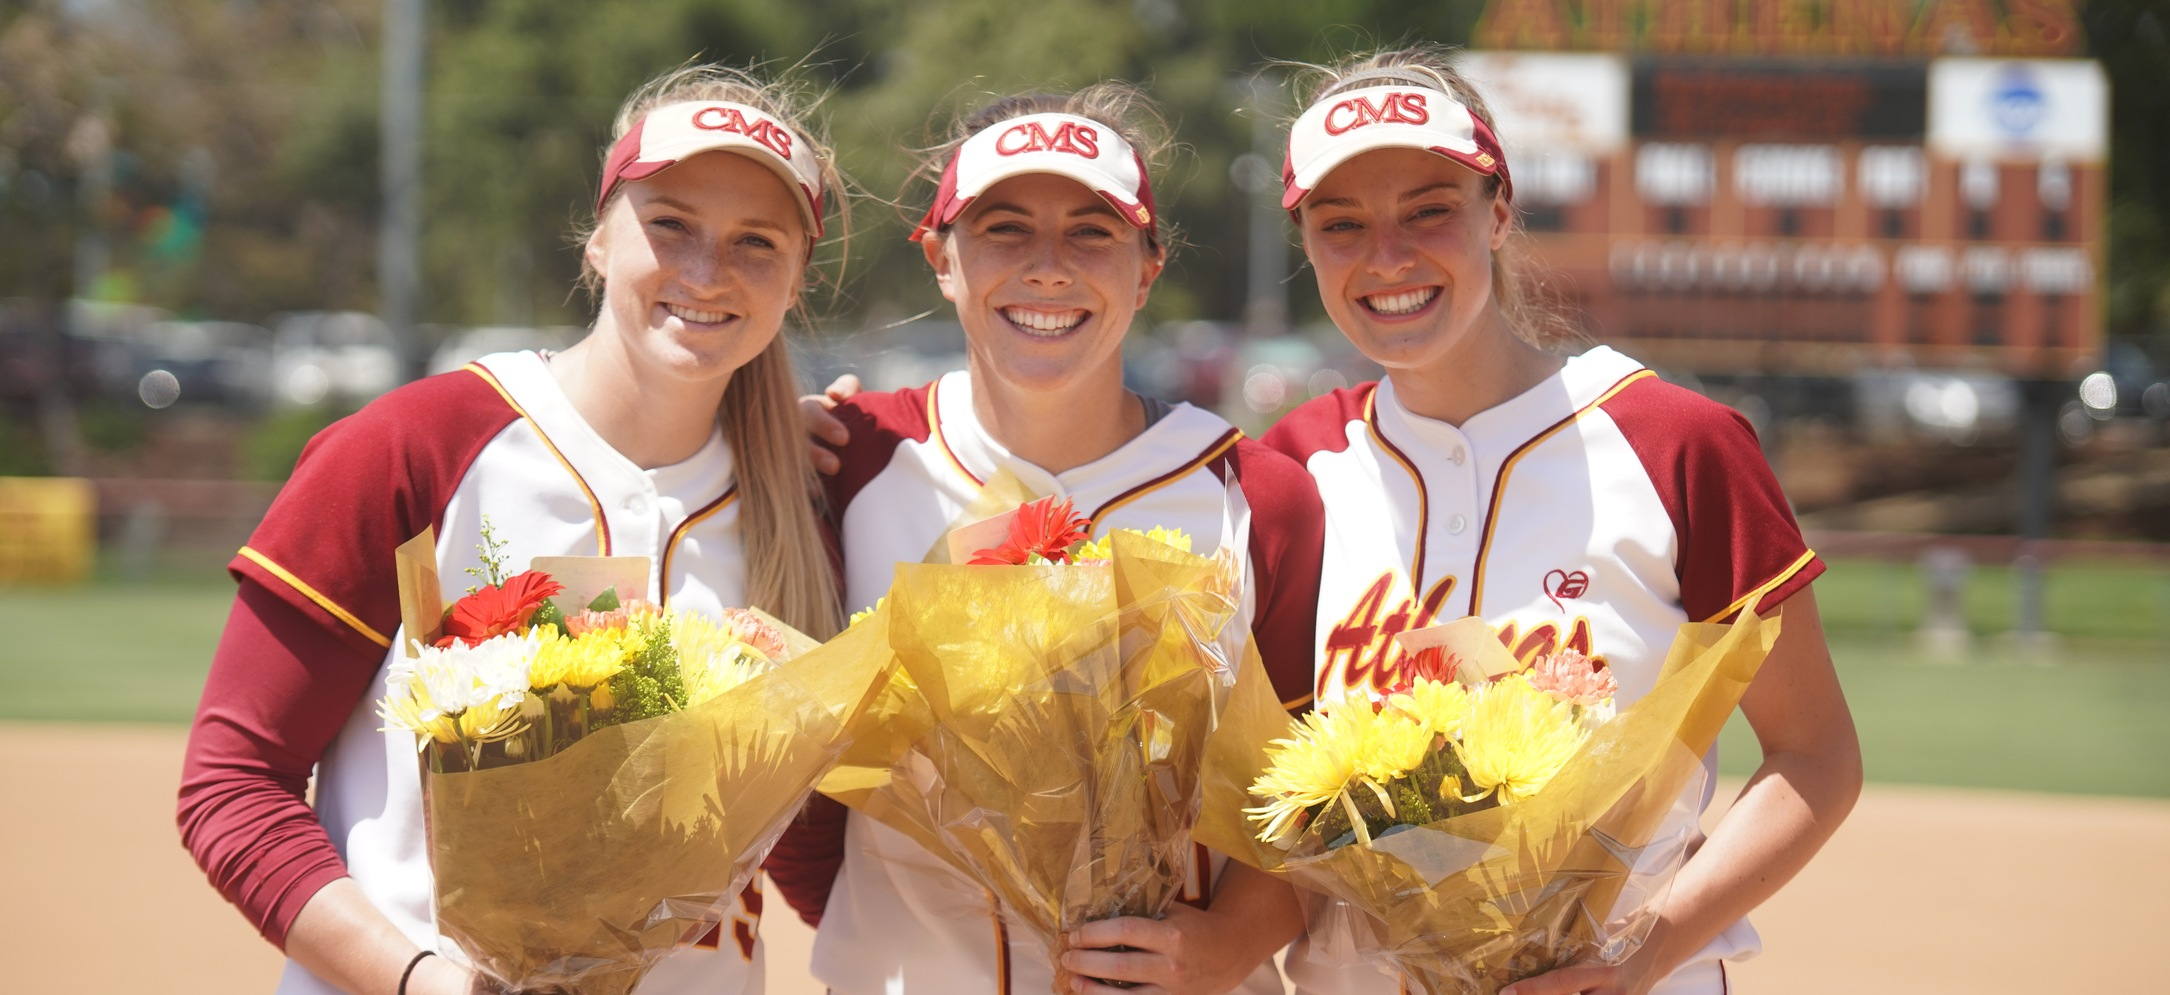 CMS seniors: Carly Roleder (CMC), Anna Gurr (CMC), and Briana Halle (CMC) (photo credit: Alicia Tsai)